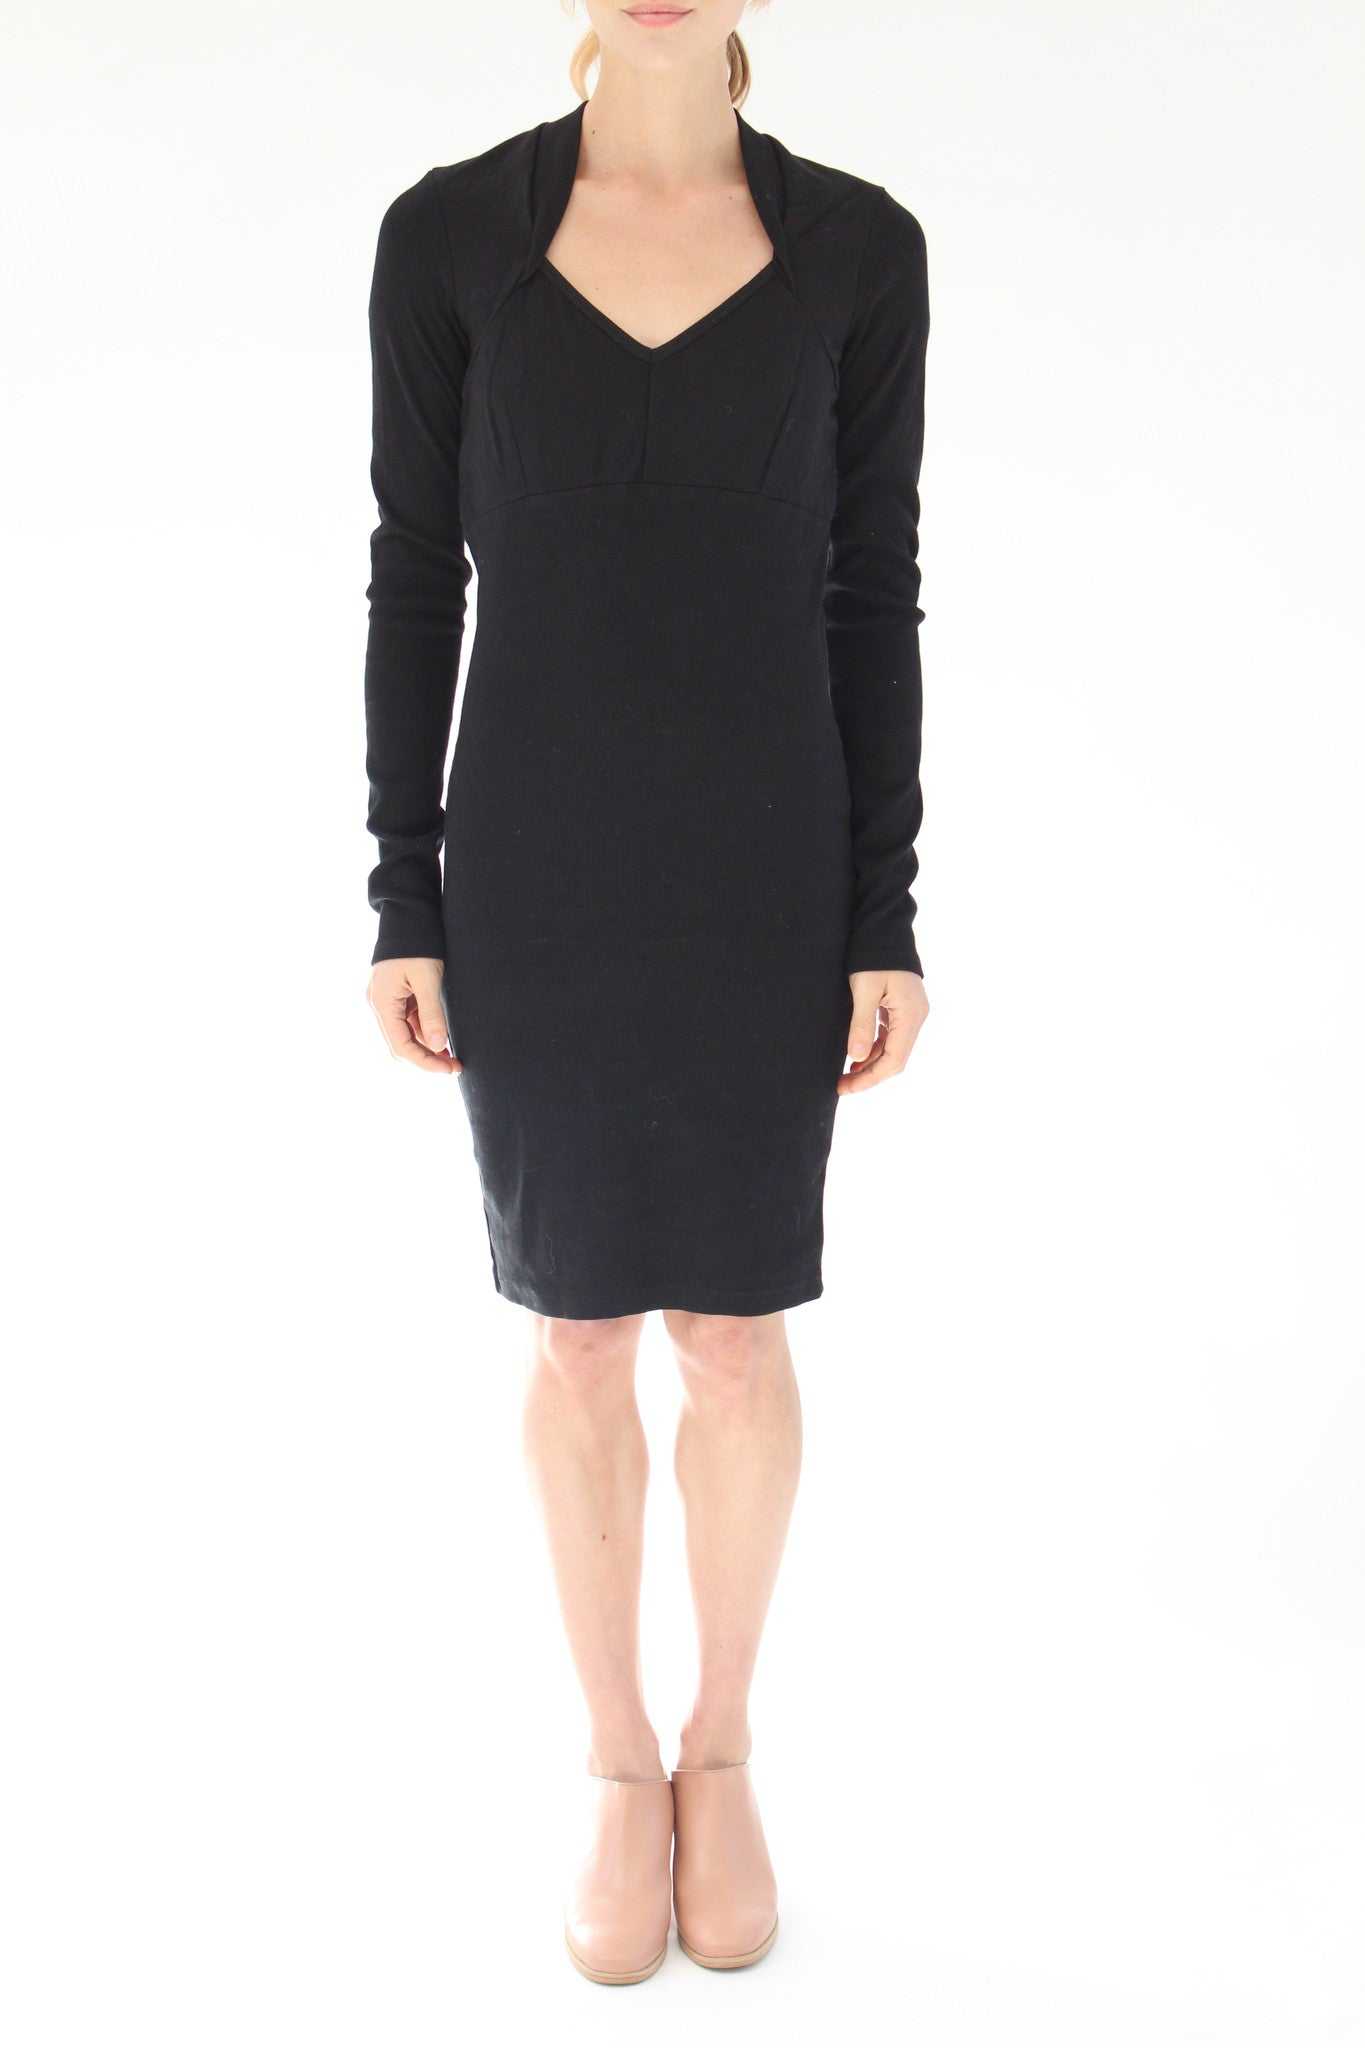 Prairie Underground TNT Dress Black At Beklina